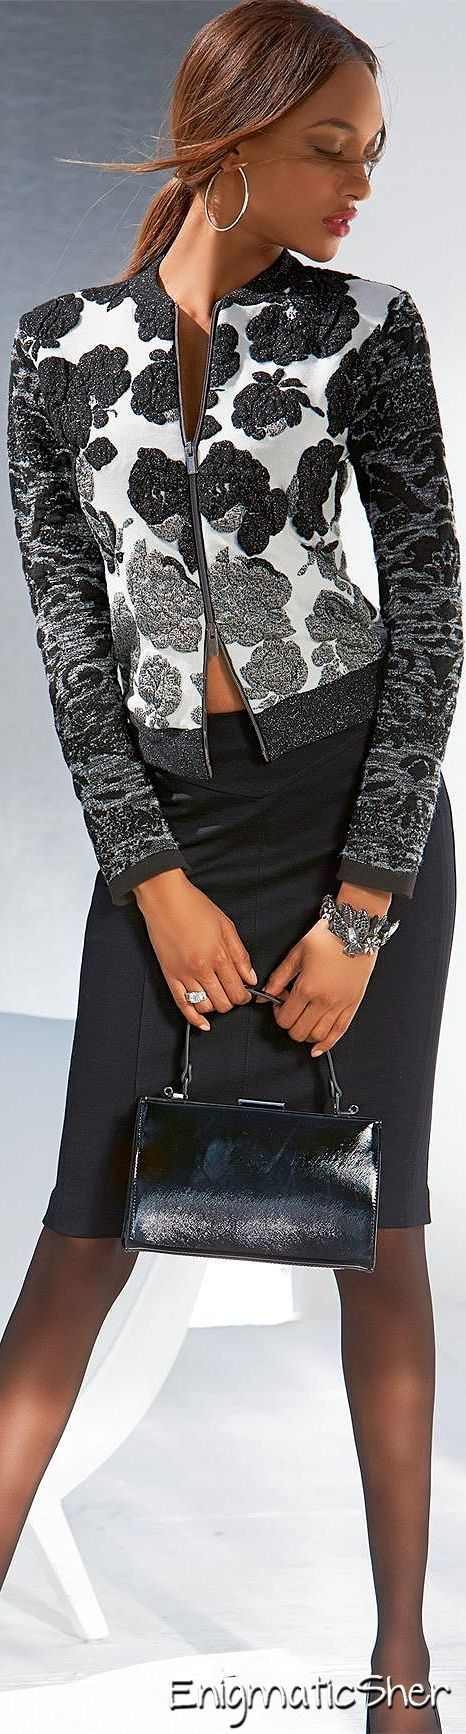 New Fall 2014 Arrivals from Madeleine - www.madeleine.co.uk